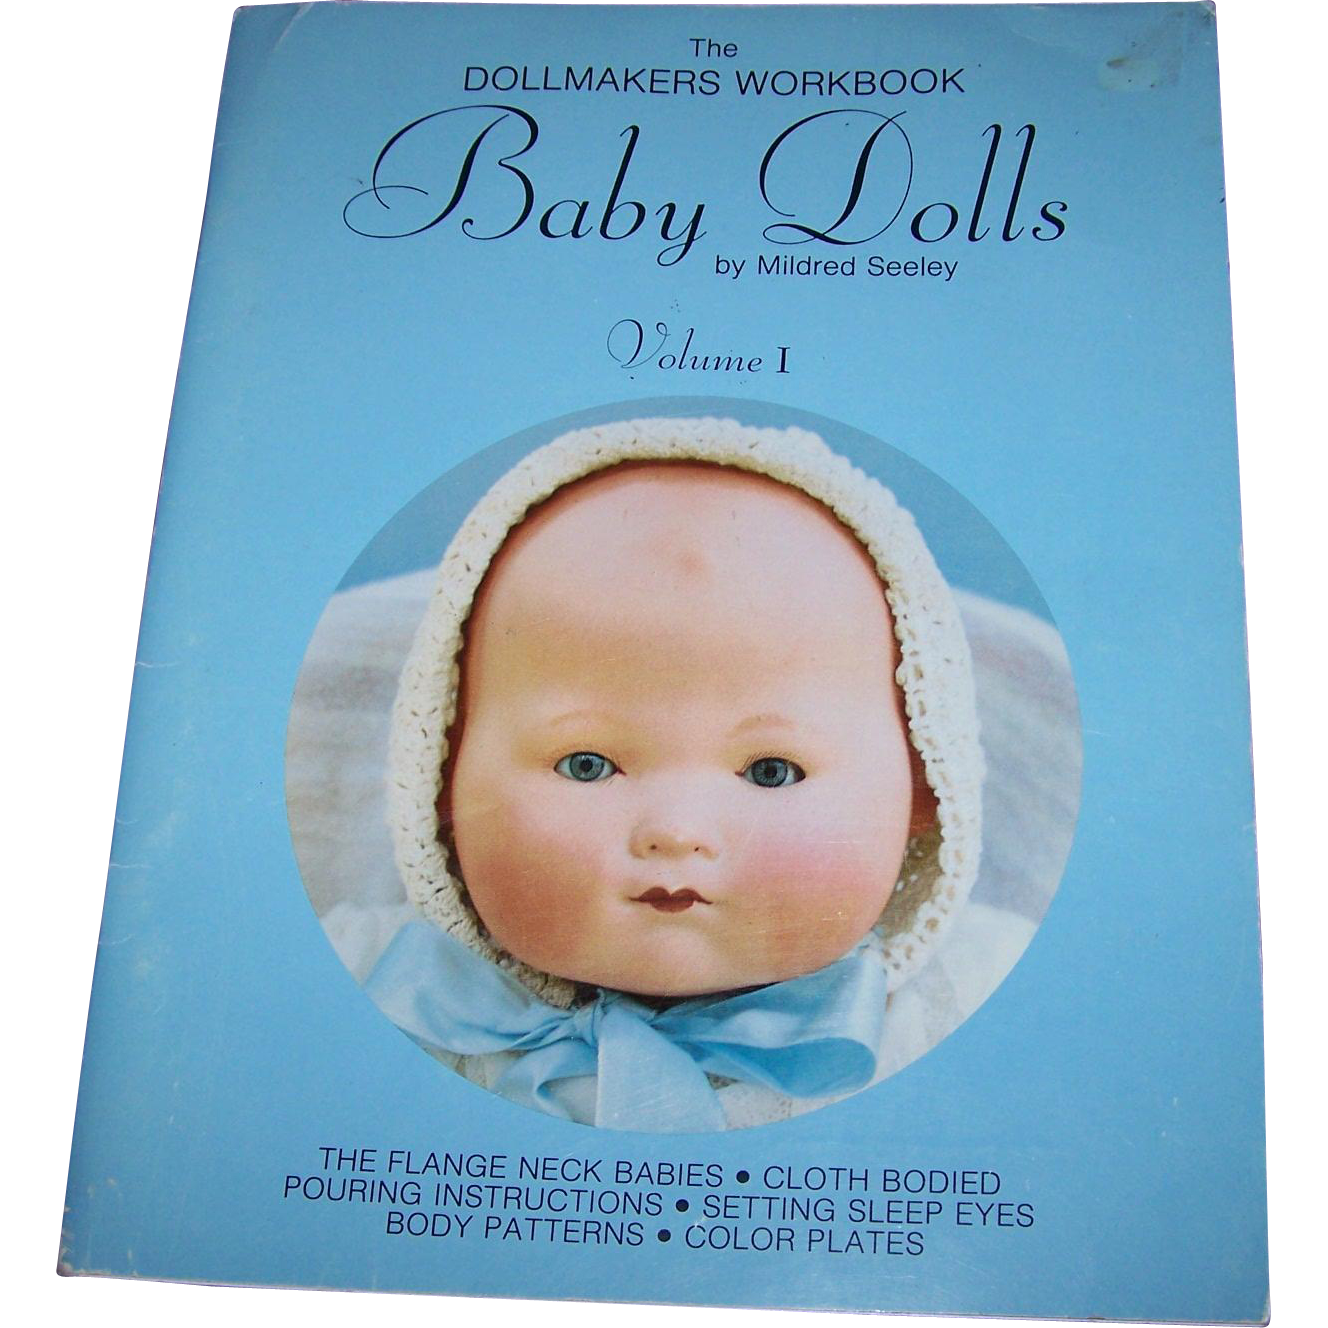 Soft Cover Book The Dollmakers Workbook Baby Dolls by Mildred Seeley Vol 1